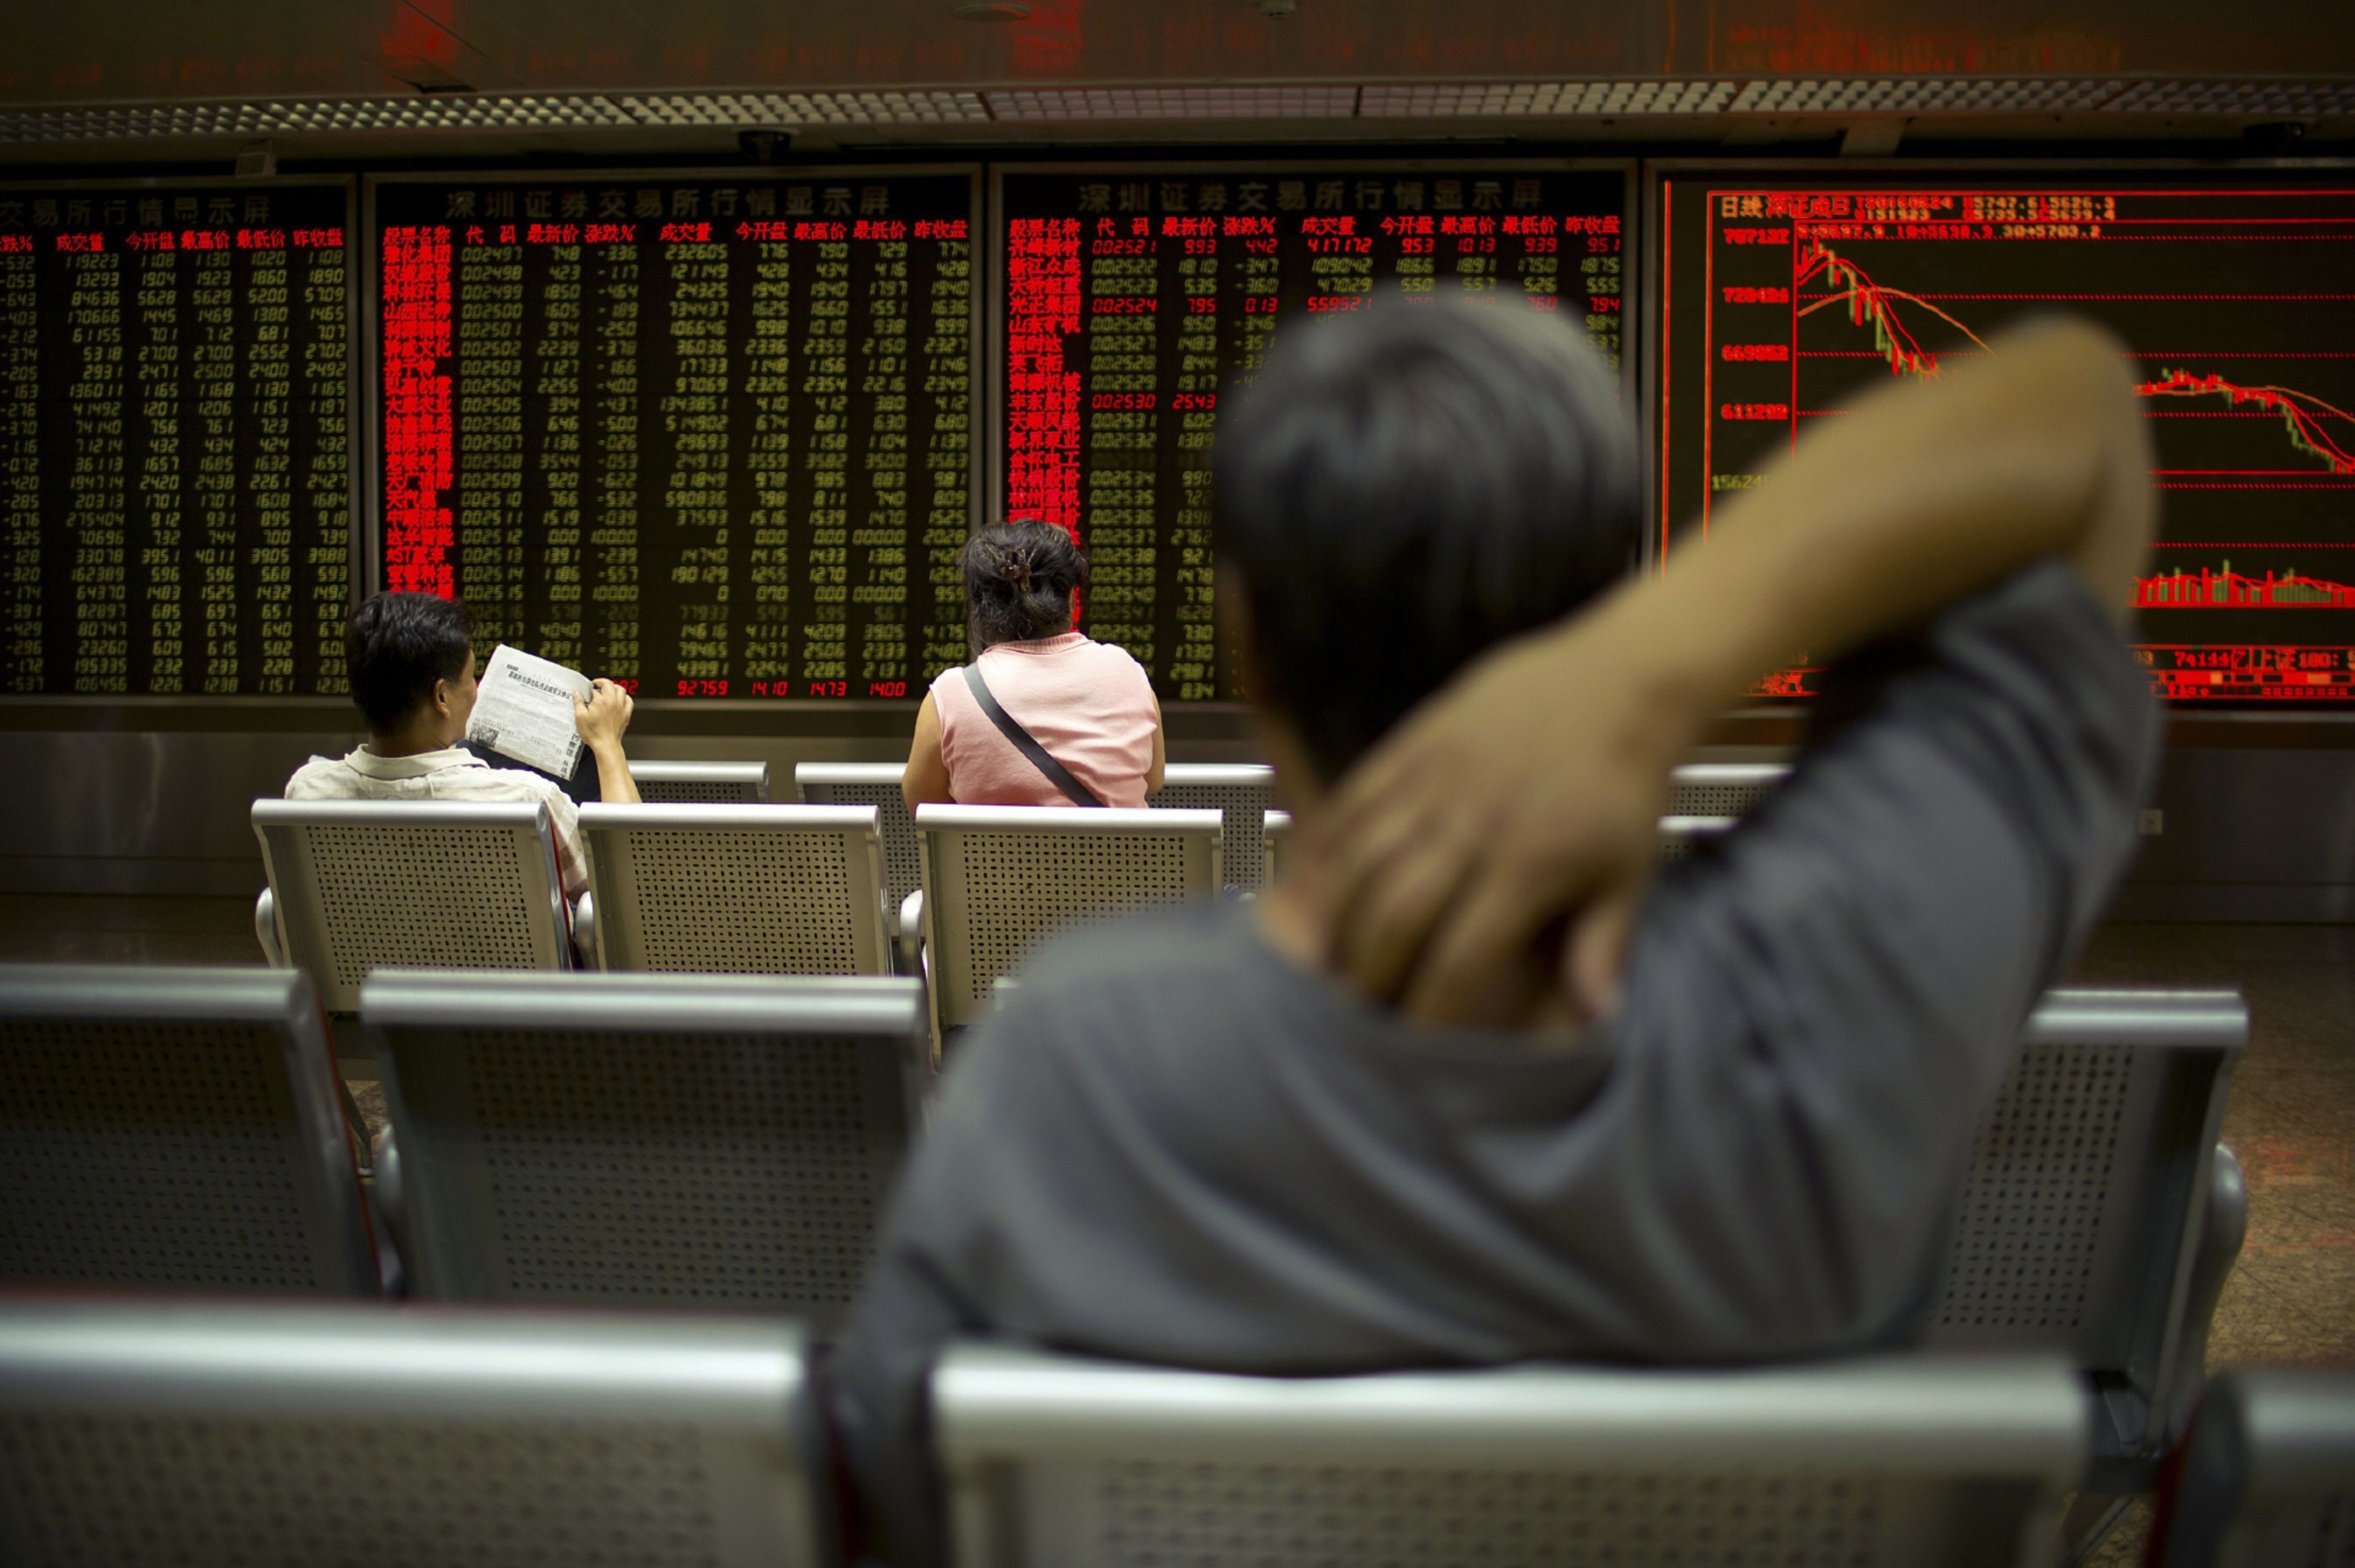 Investors watched as global stock prices slumped on the EU referendum result